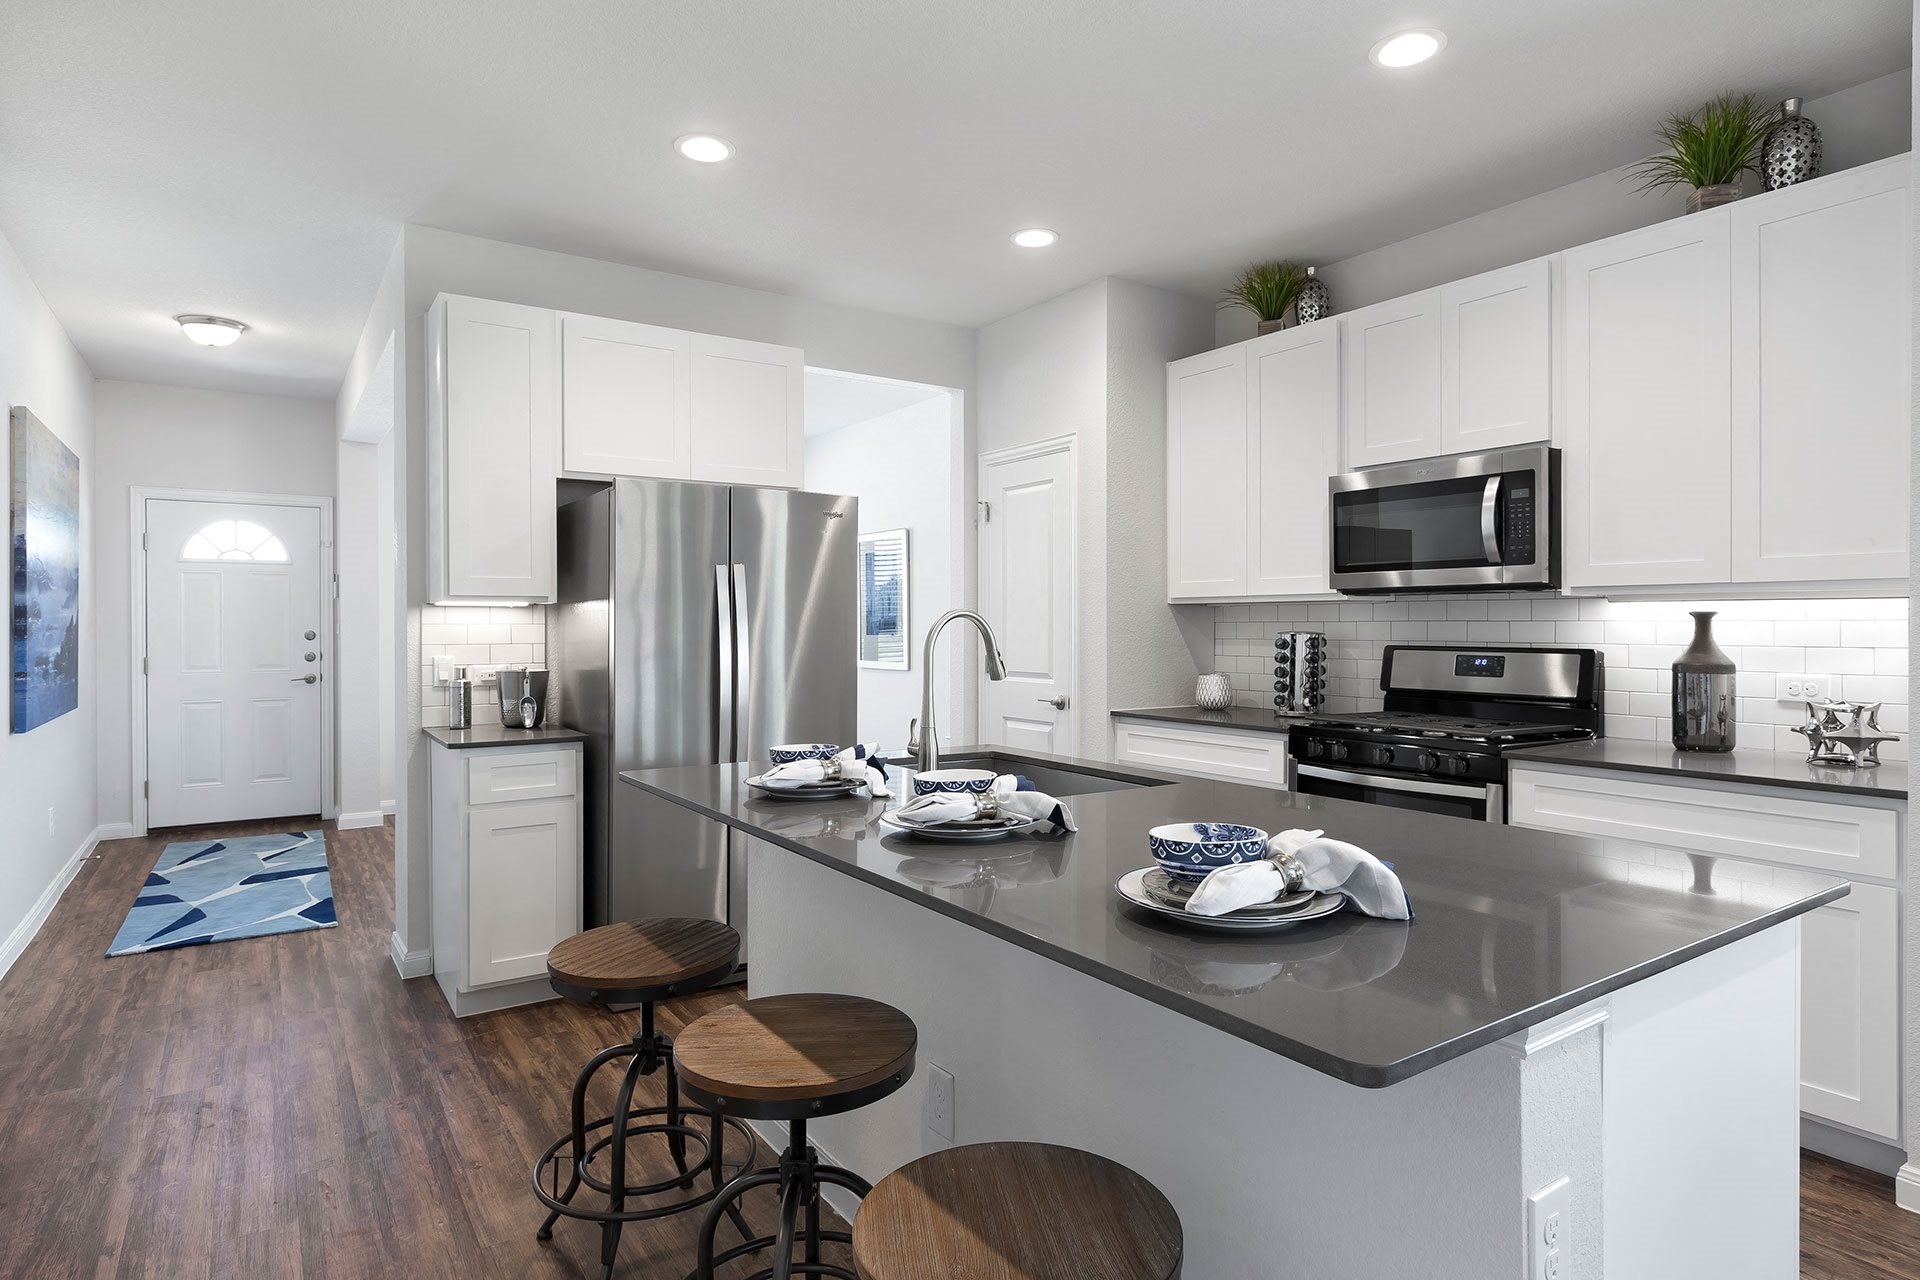 The Legacy  Stainless Steel Appliances and Gas Ranges